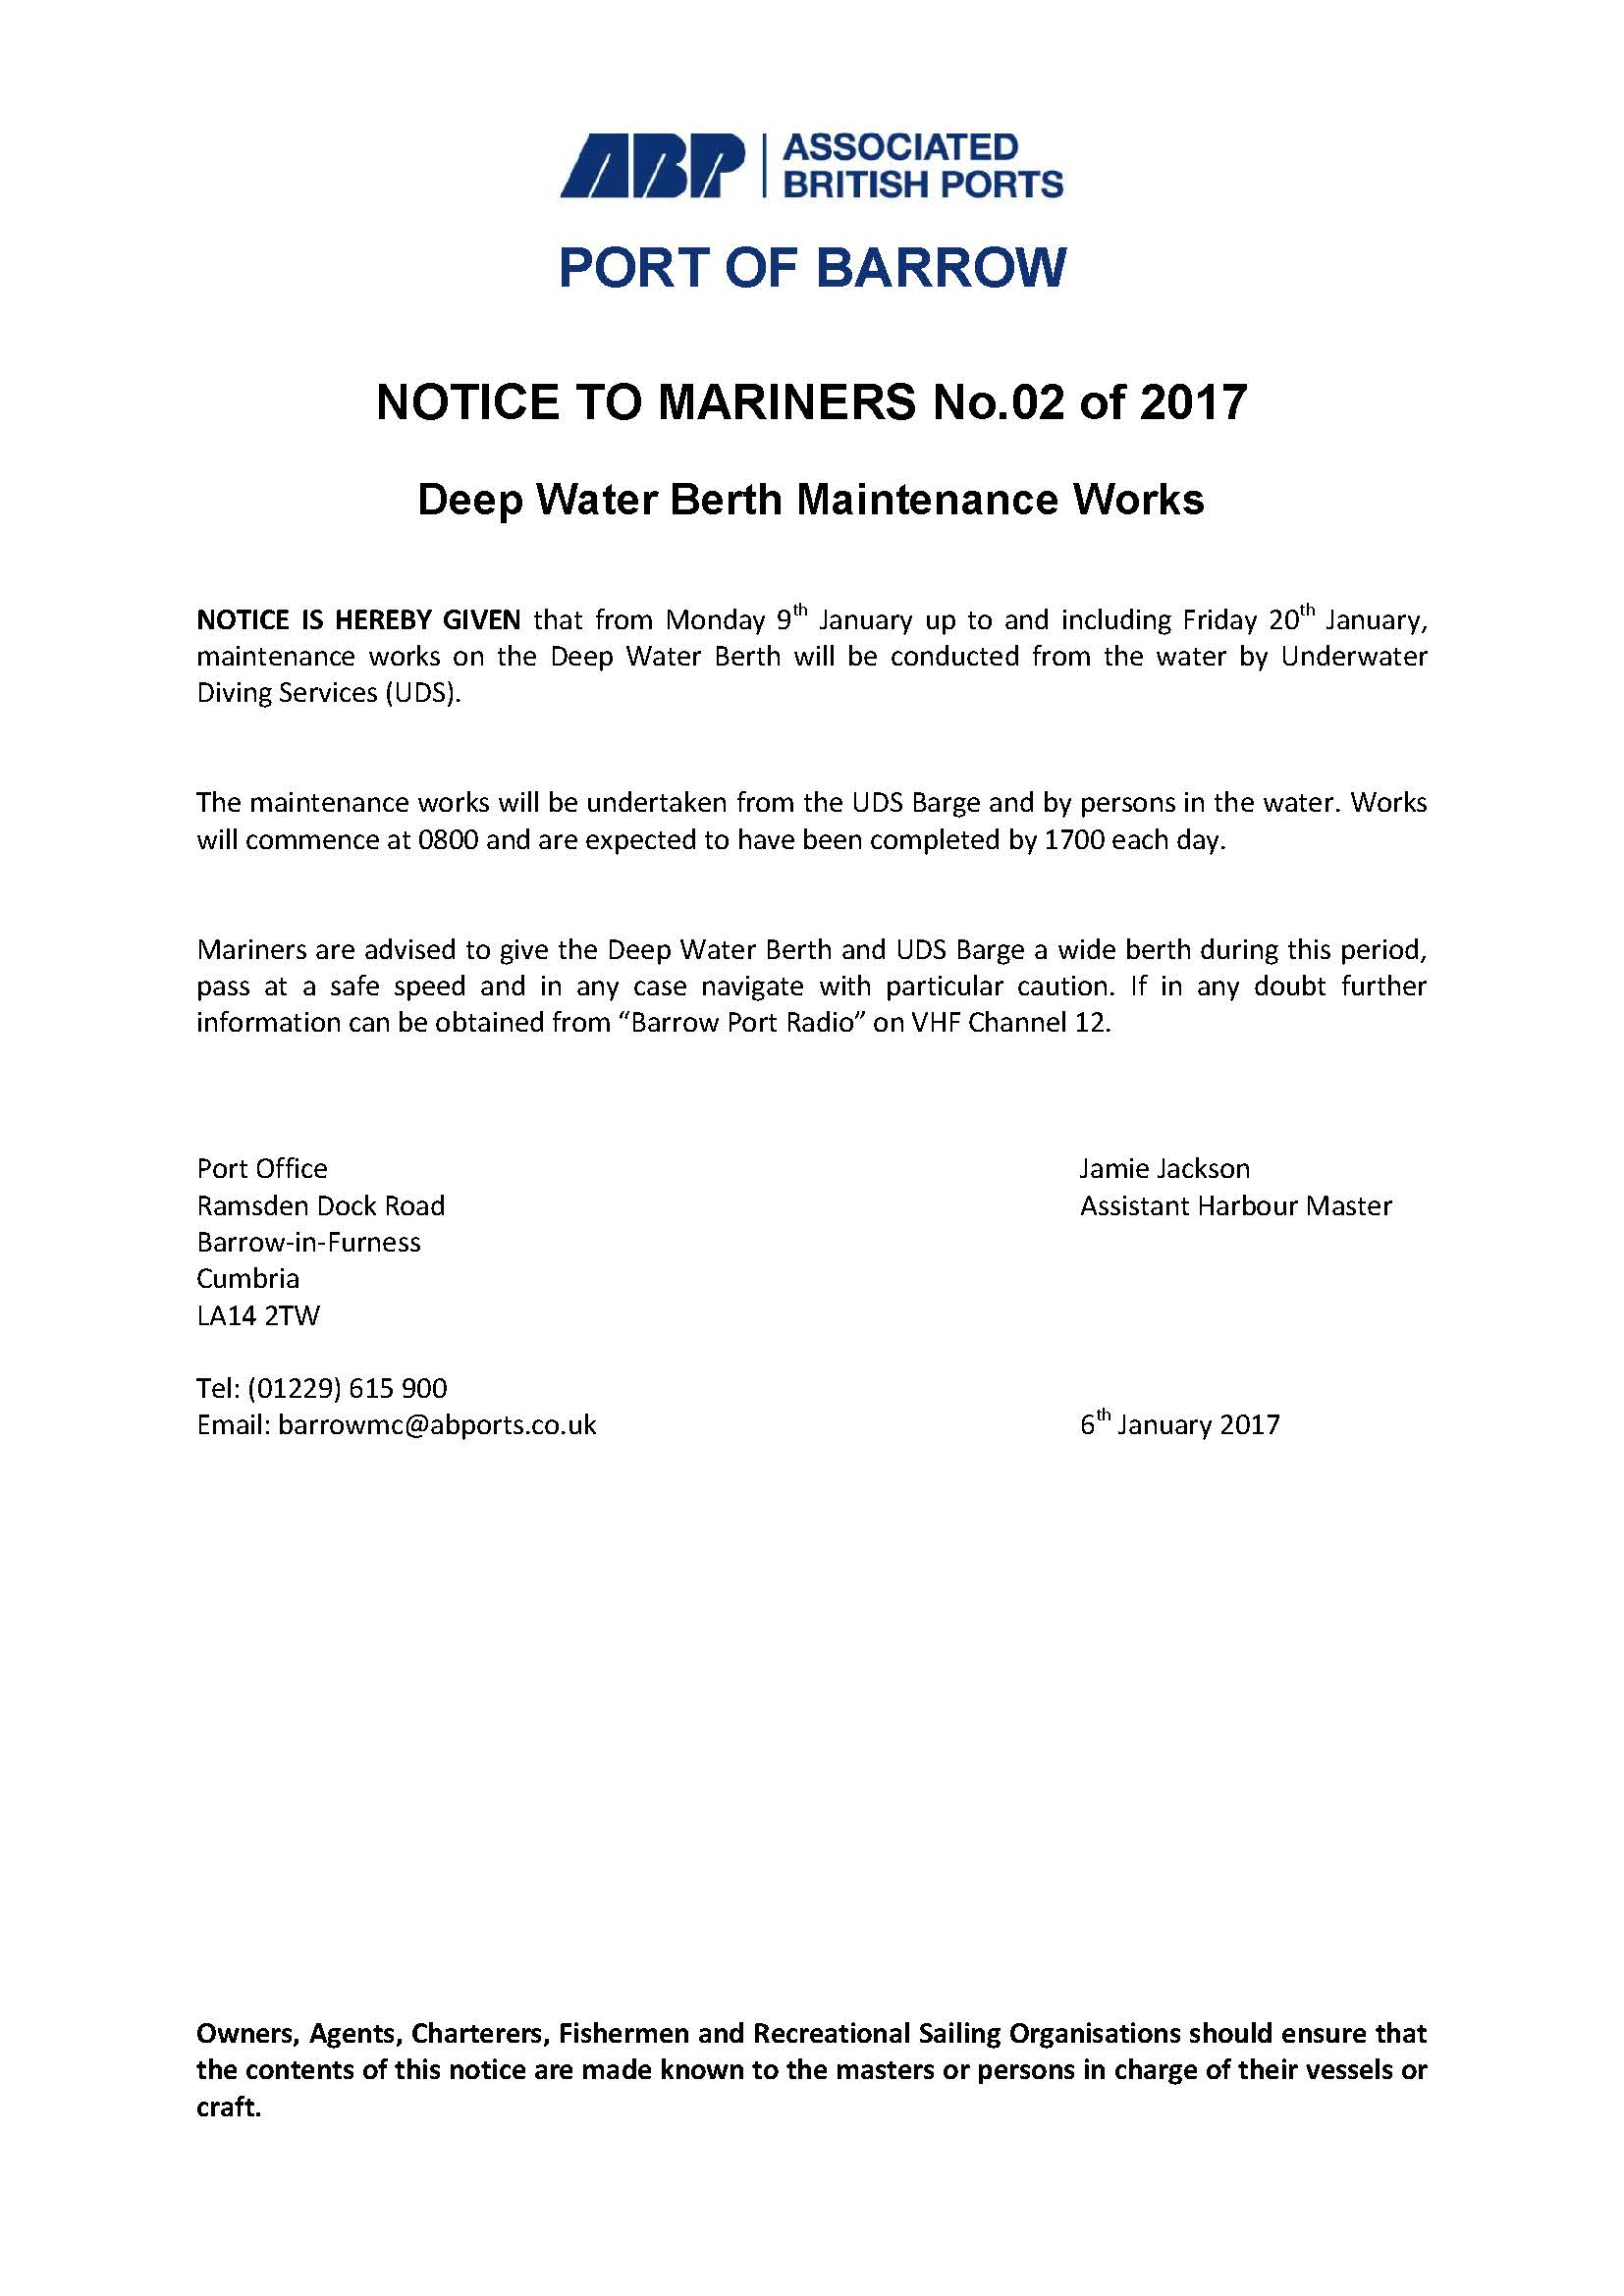 Notice to Mariners 2